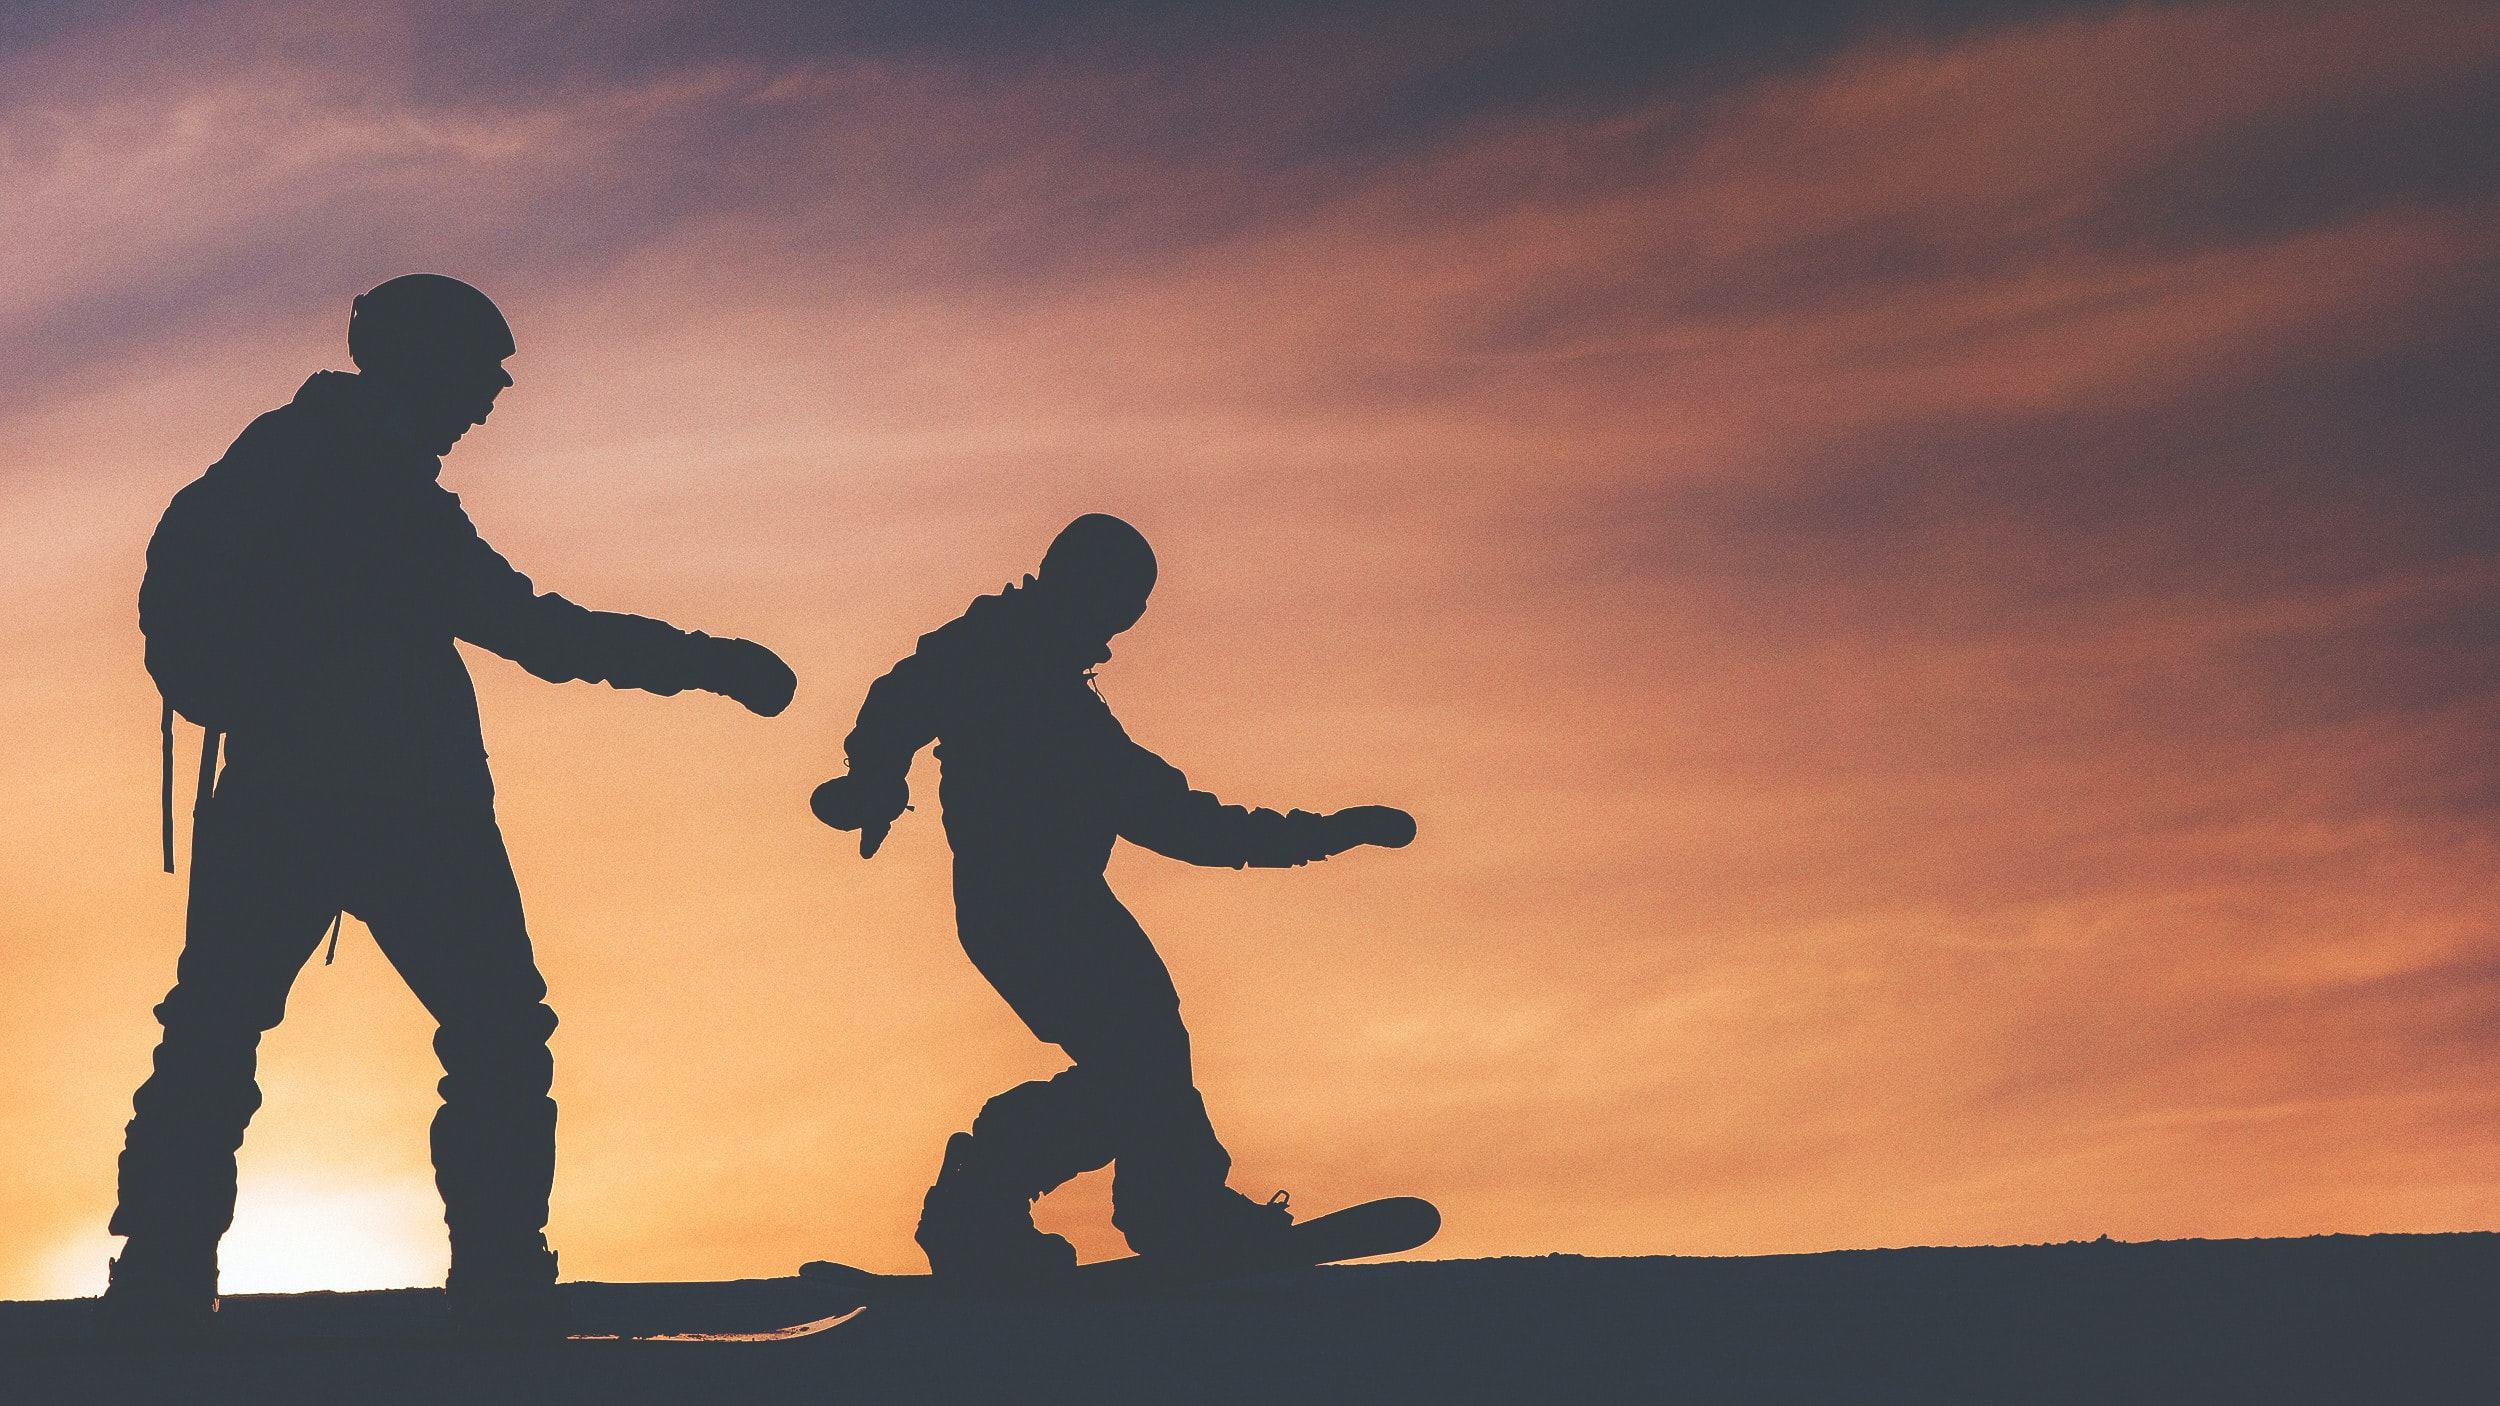 Silhouette of two snowboarders in Zell am See attempting to ride during sunset